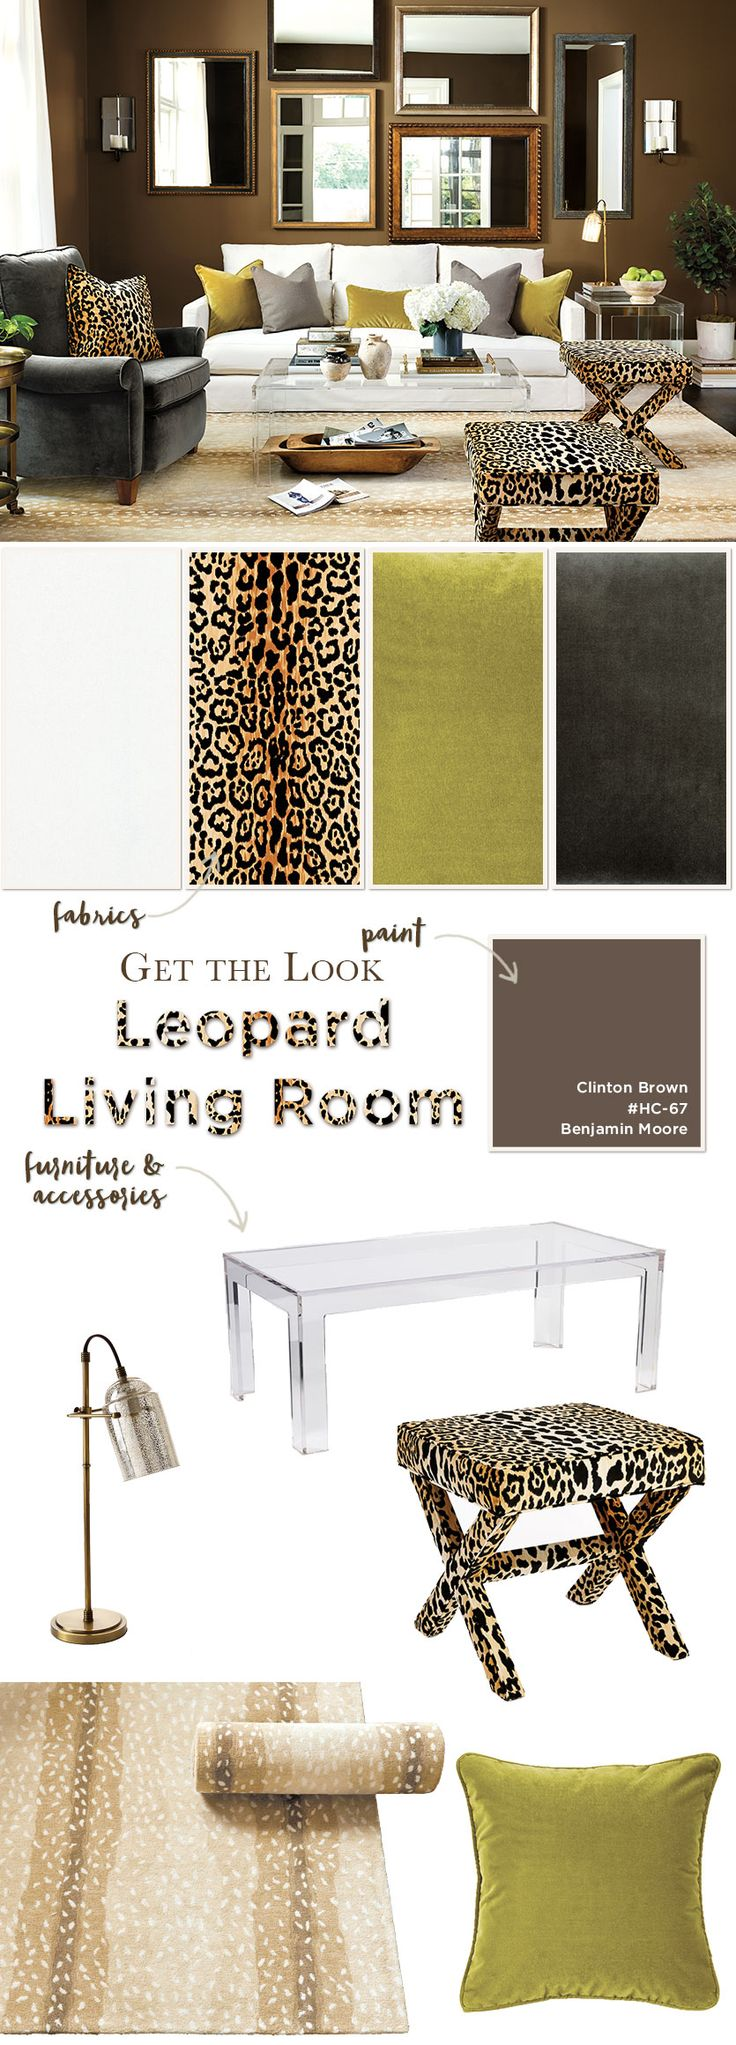 Get the Look of this chic, brown living room with leopard accents